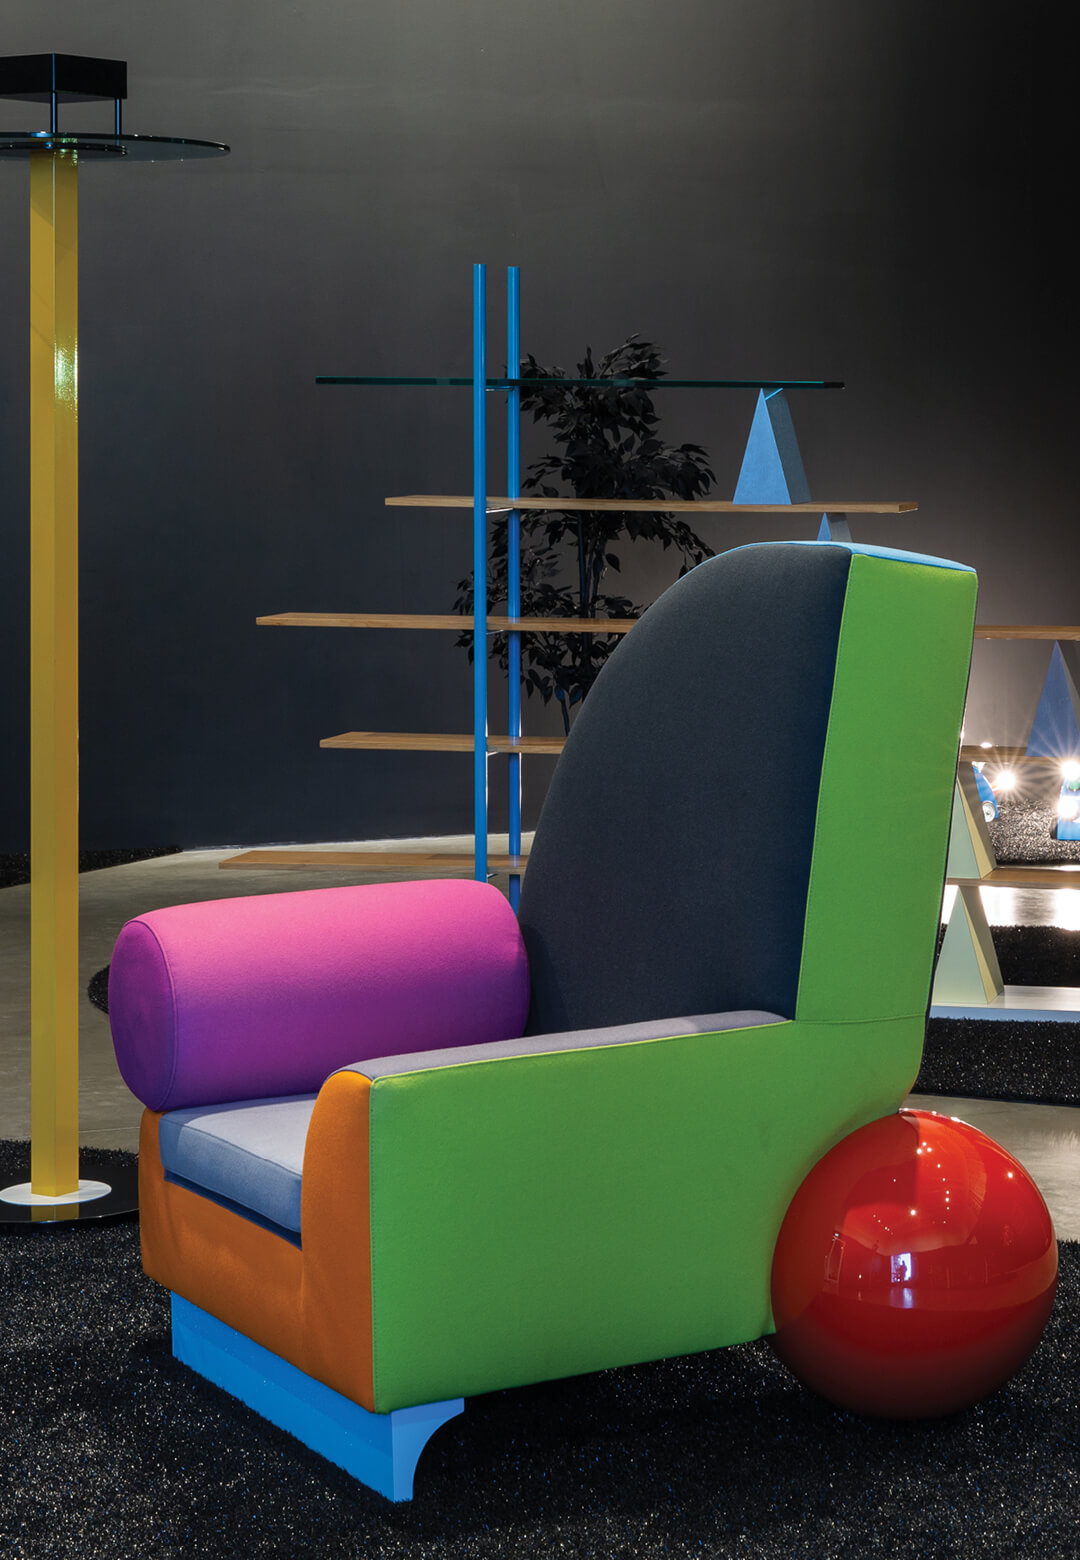 Installation view with King floor lamp (1983) by Ettore Sottsass and Bel Air armchair (1982) by Peter Shire in the foreground at Memphis: Plastic View, MK Gallery, Milton Keyes  Memphis: Plastic View   MK Gallery   STIRworld